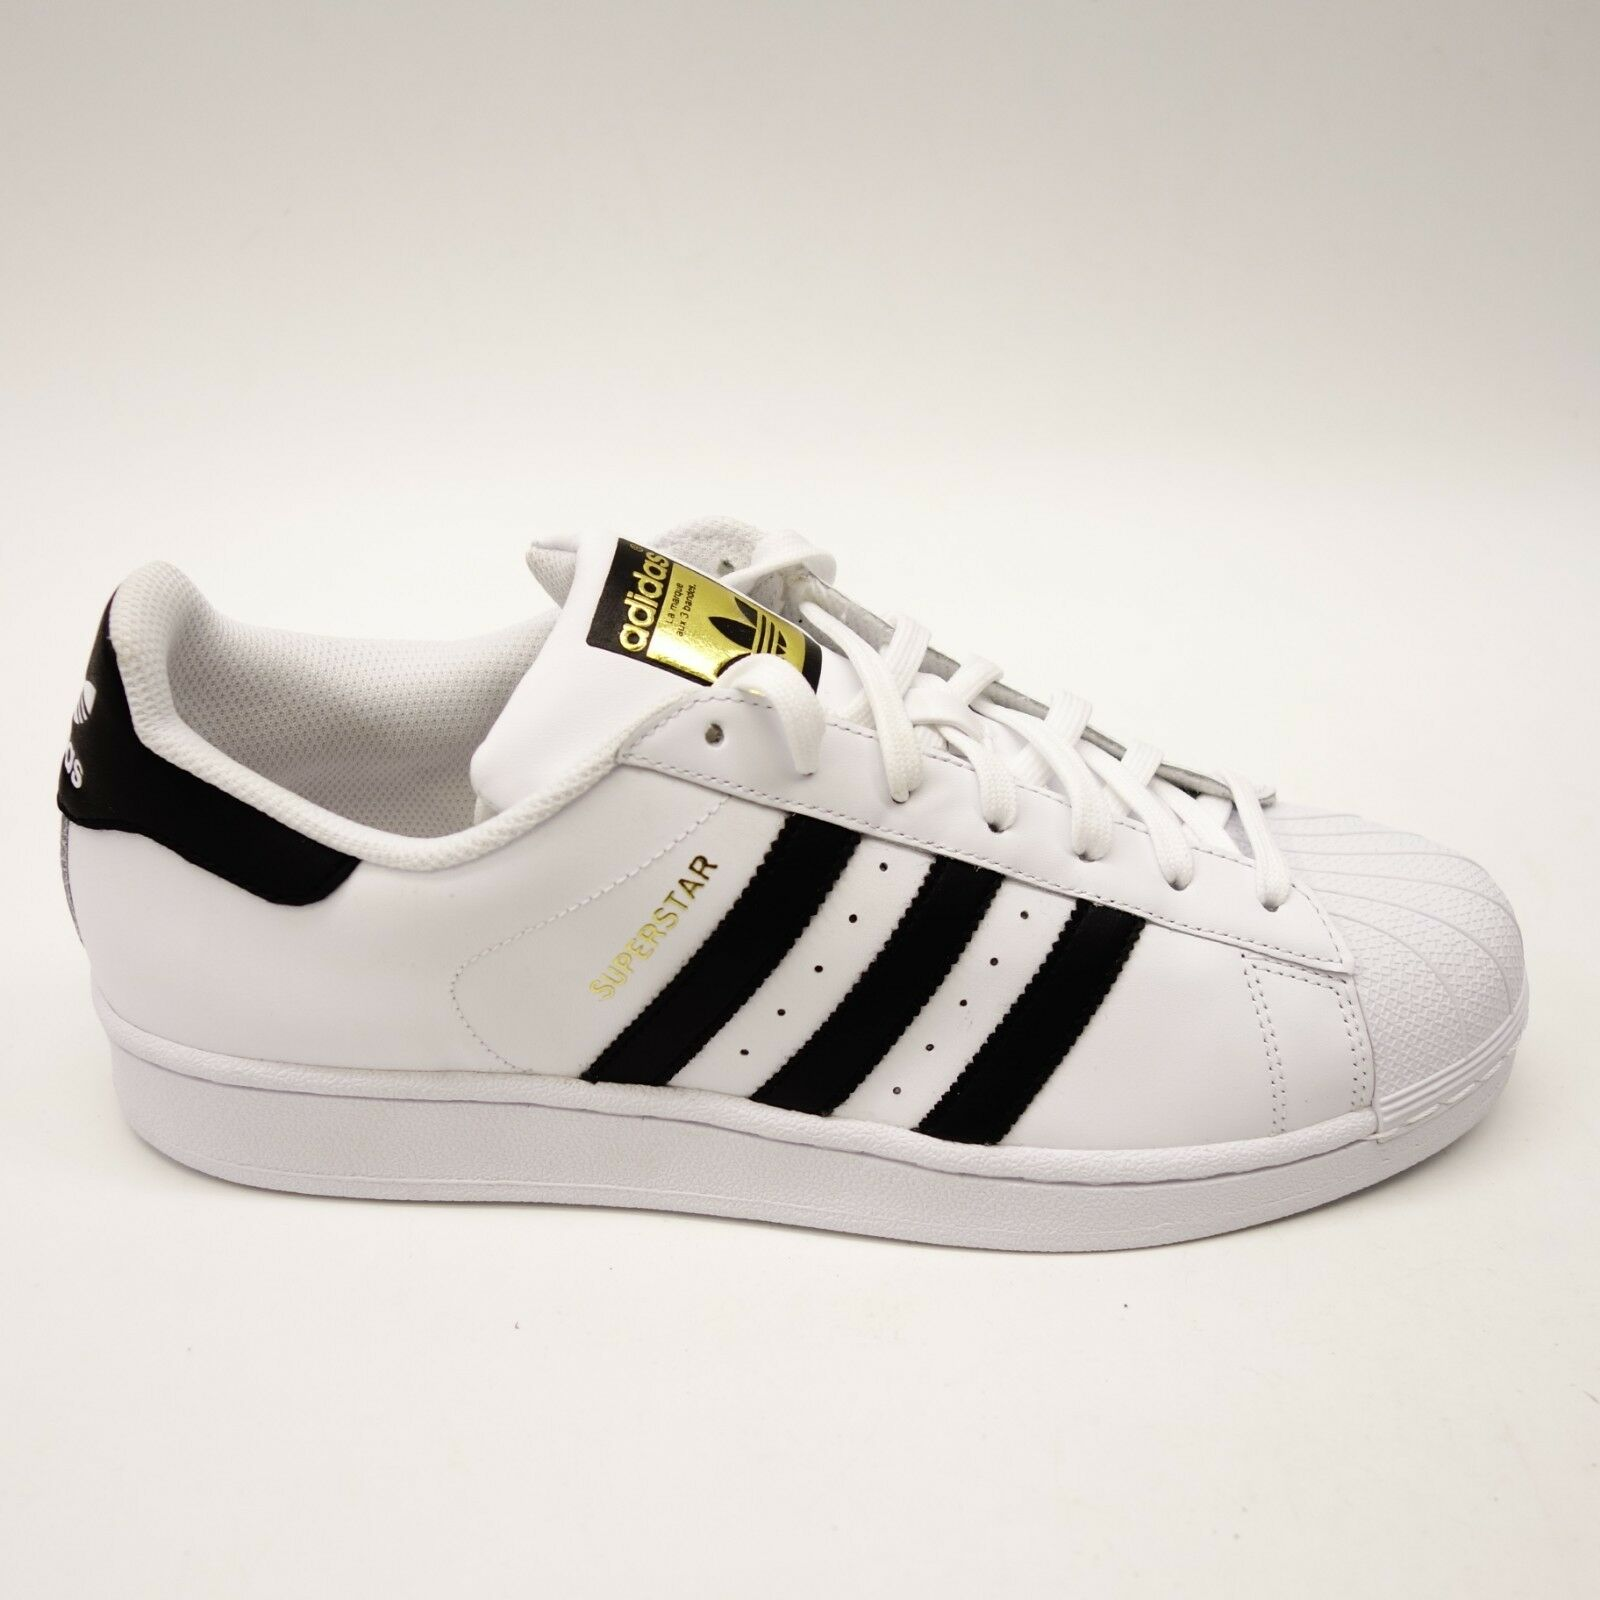 Adidas Originals Mens Superstar Foundation White Casual shoes Sizes 10